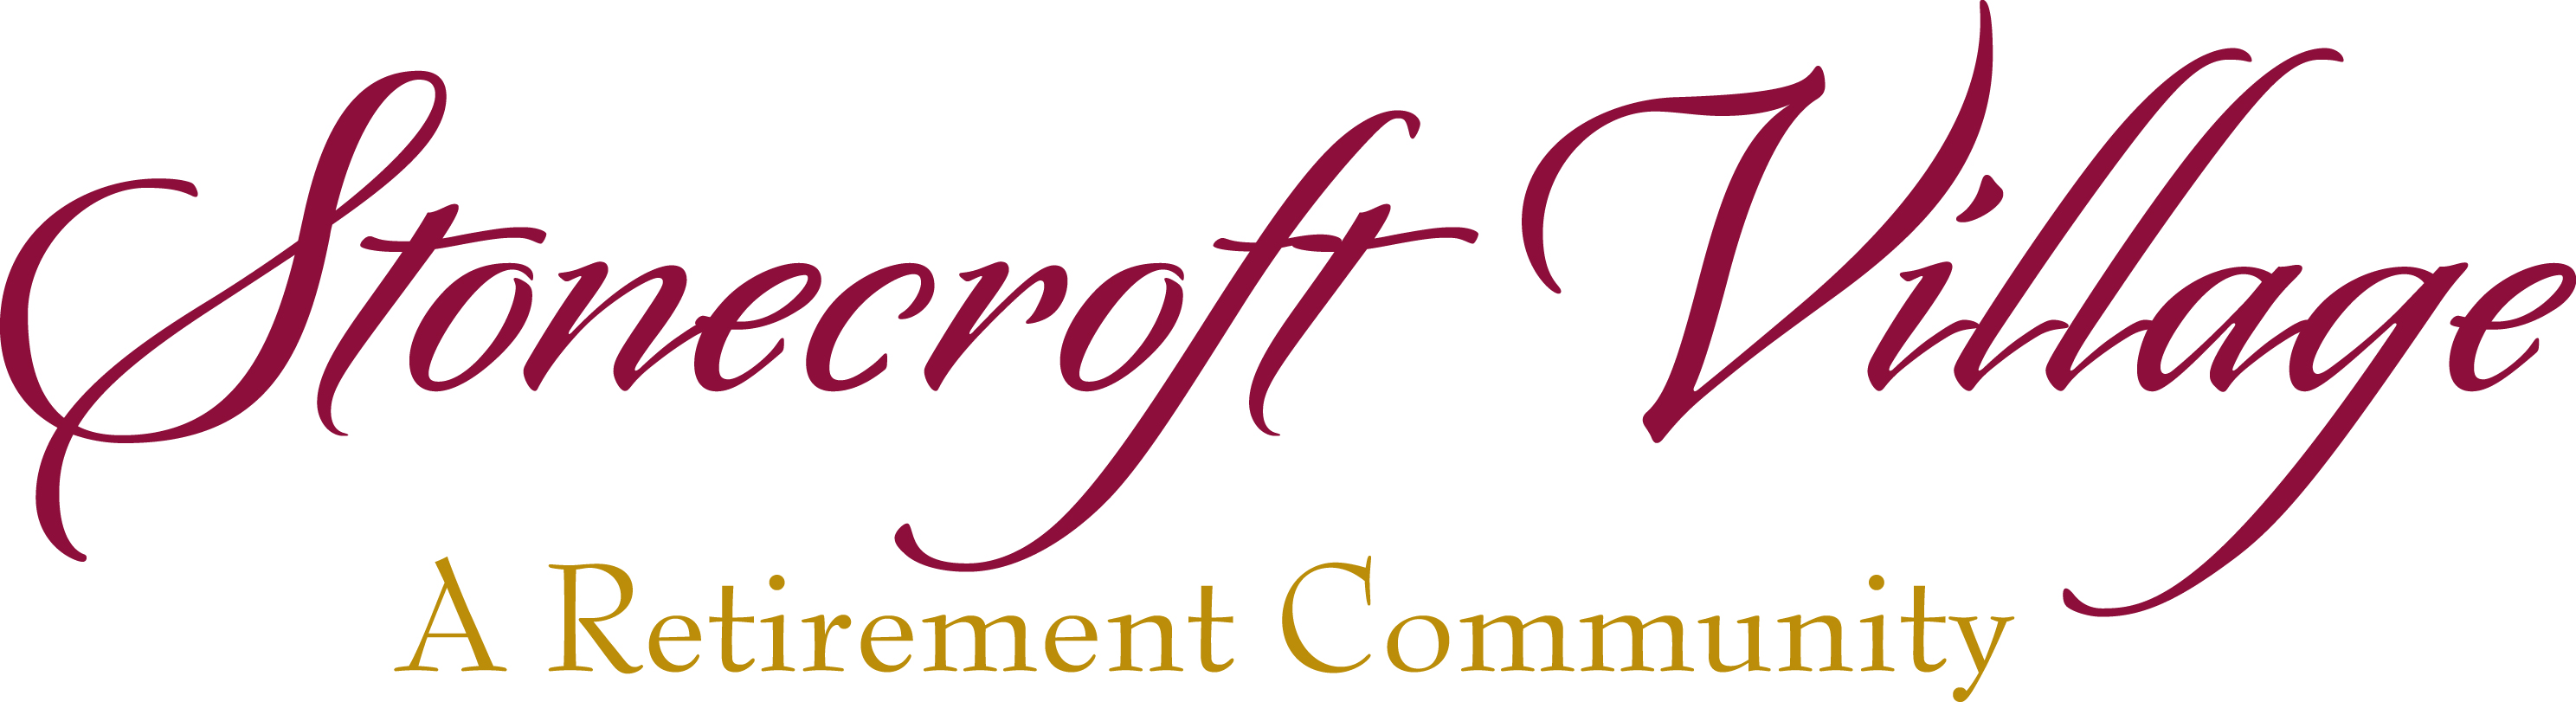 Stonecroft Village Logo